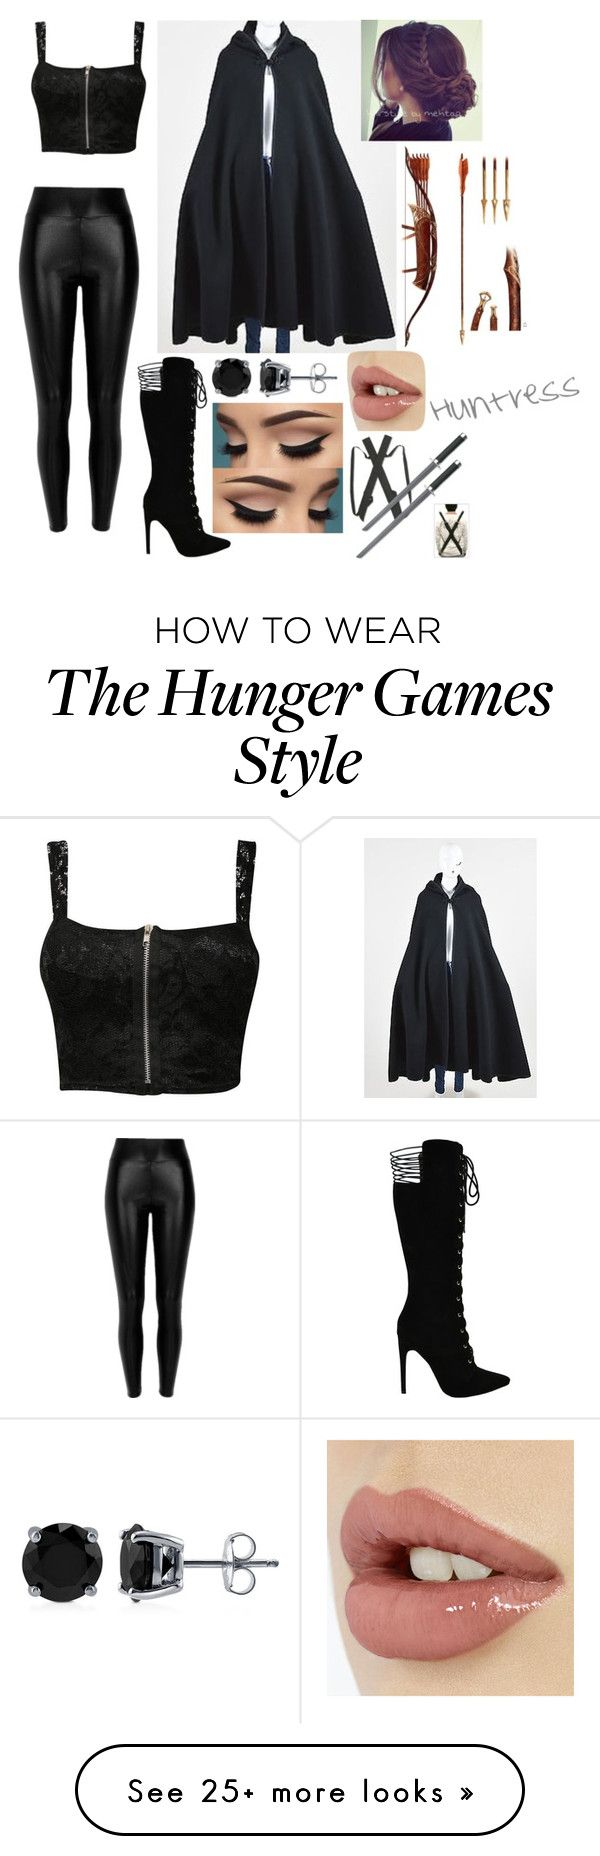 """""""Huntress"""" by beachlover44 on Polyvore featuring Calvin Klein, Pilot and BERRICLE"""